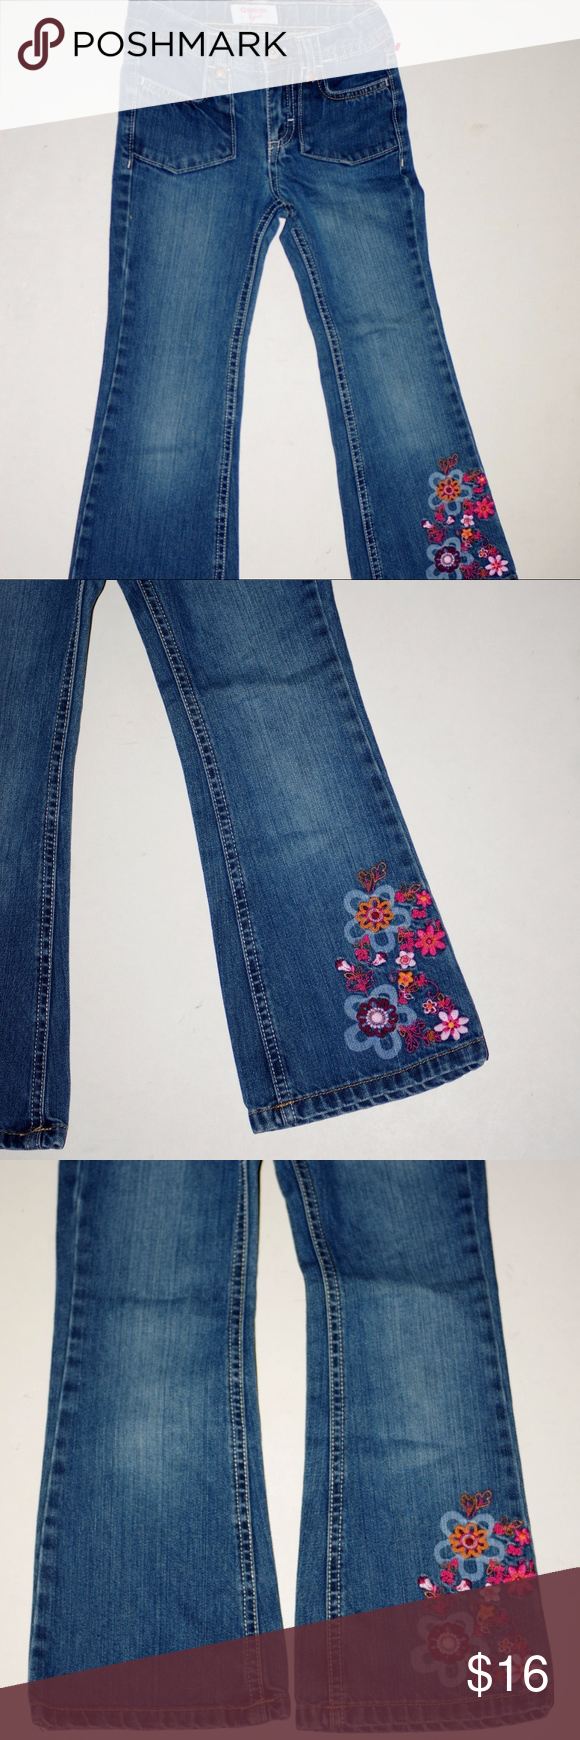 """Unworn OshKosh B'Gosh Girls Embroidered Blue Jeans By OshKosh B'Gosh Girls Tag Size 6 Unworn but freshly laundered (so should not shrink) Flower Power Embroidered leg Super cute True fit waist with hidden elastic adjustable band to get extended wear Waist measured flat across (with elastic at relaxed position)  10"""" Inseam: 19.25"""" Leg opening measured flat across: 7"""" Front rise measured from crotch seam to waistline: 7"""" OshKosh B'gosh Bottoms Jeans"""